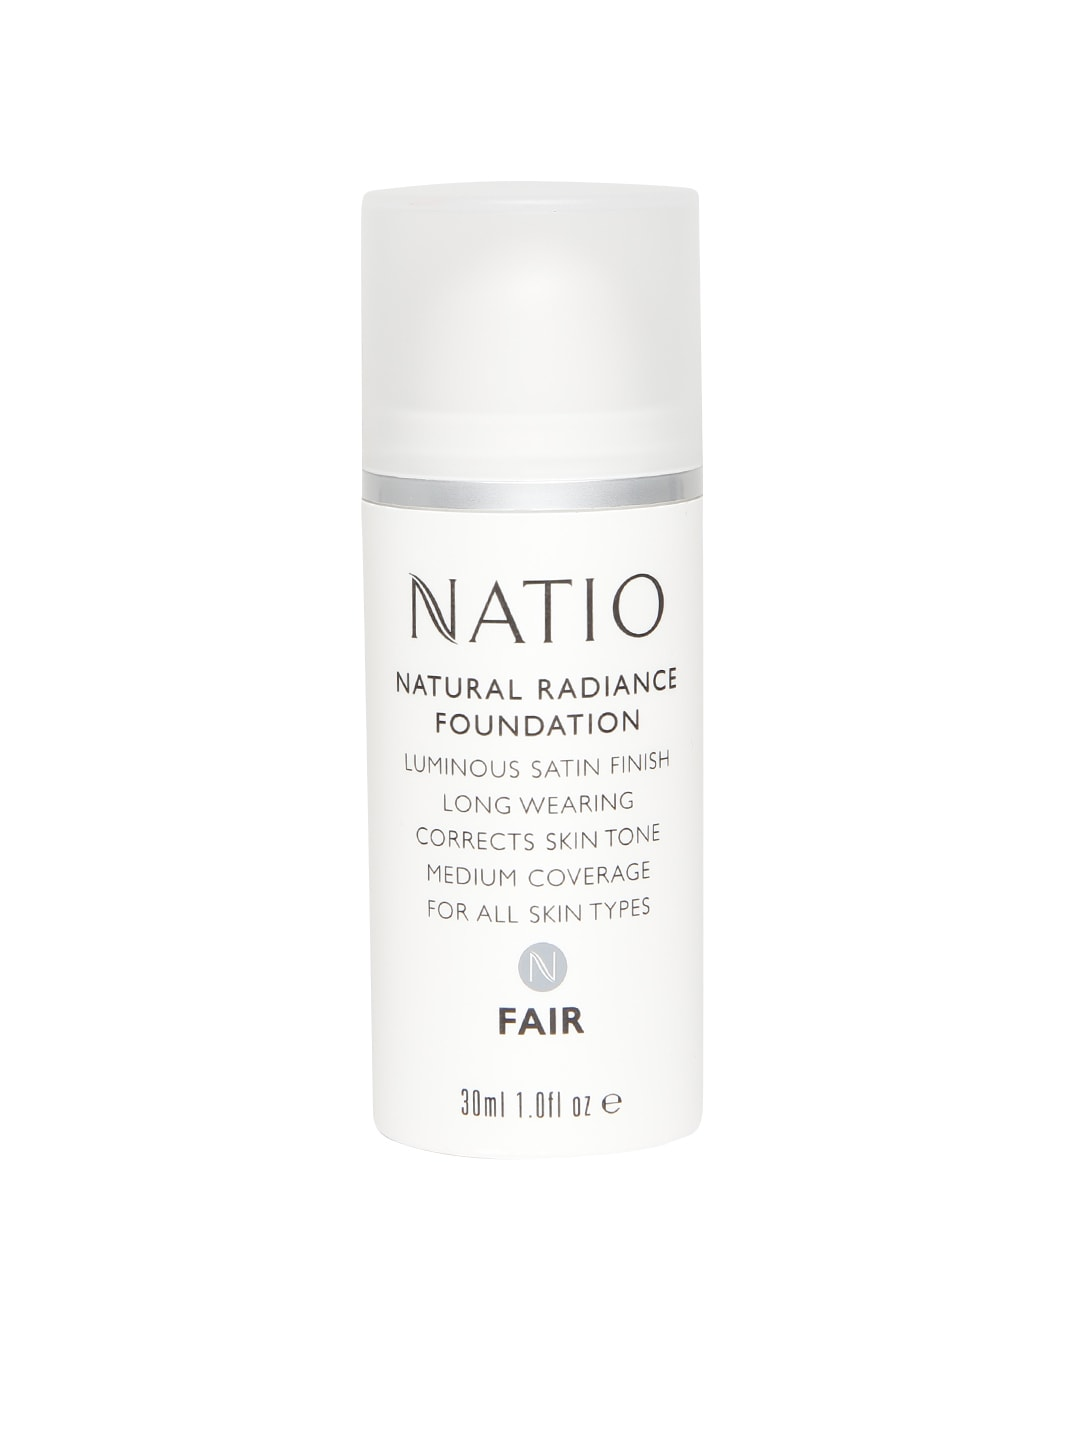 Natio Natural Radiance Fair Foundation image